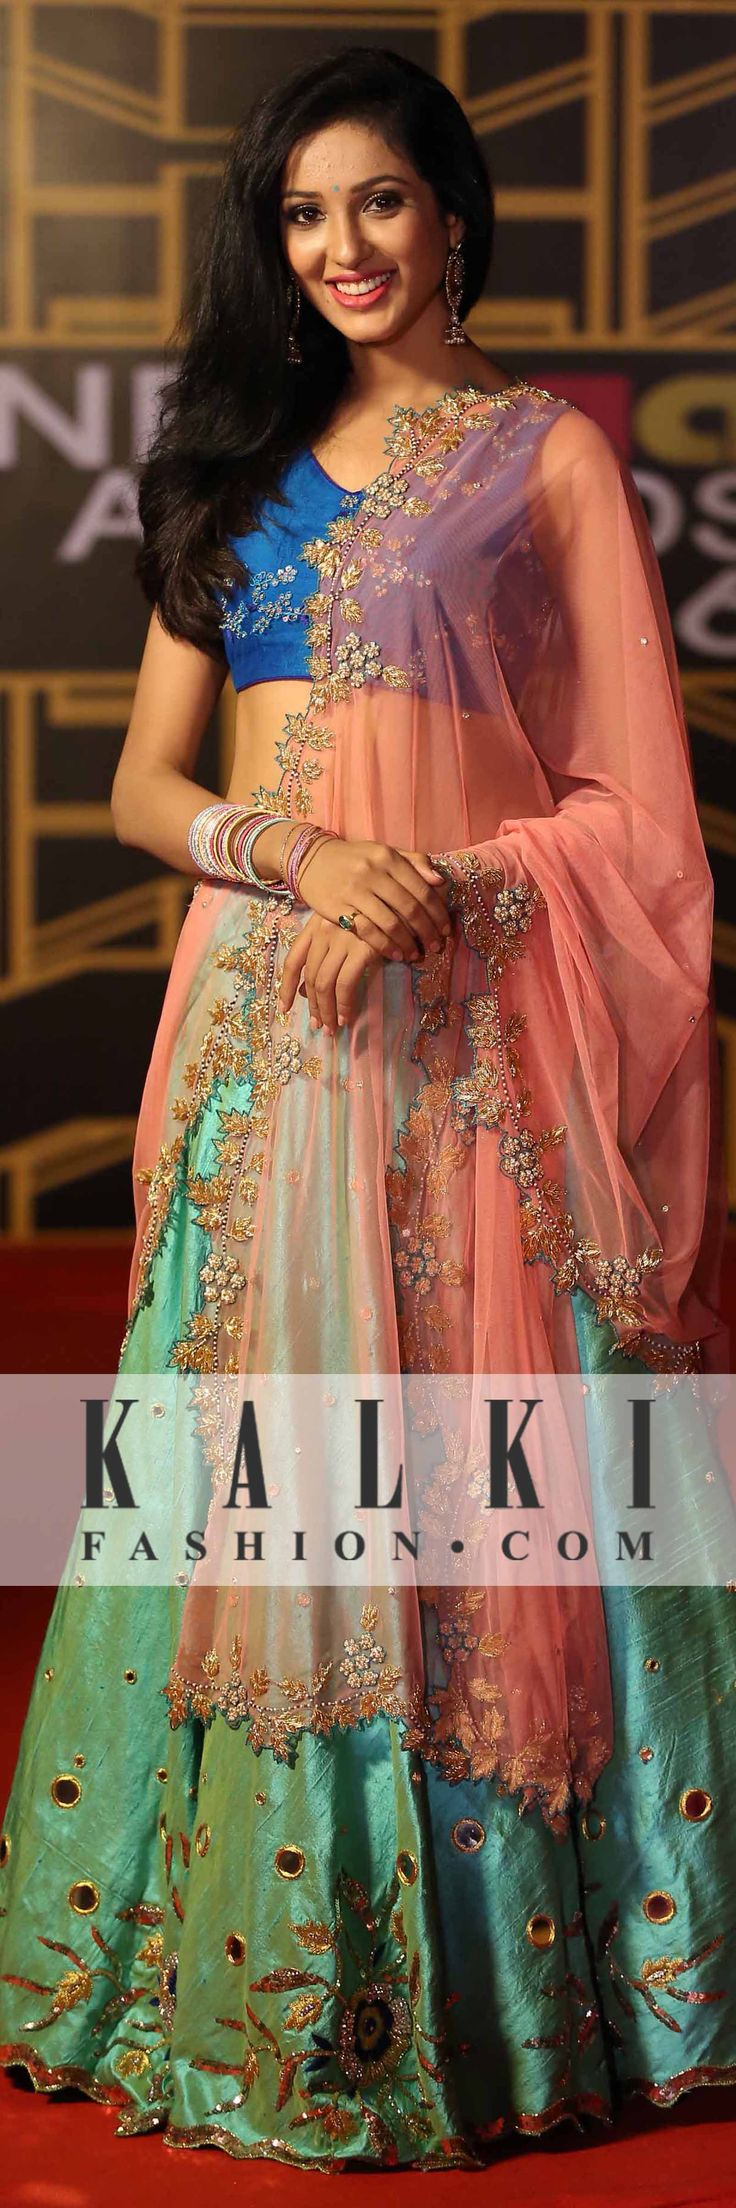 A perfect blend of green, blue and pink which look royal and stands out as she walks down the ramp